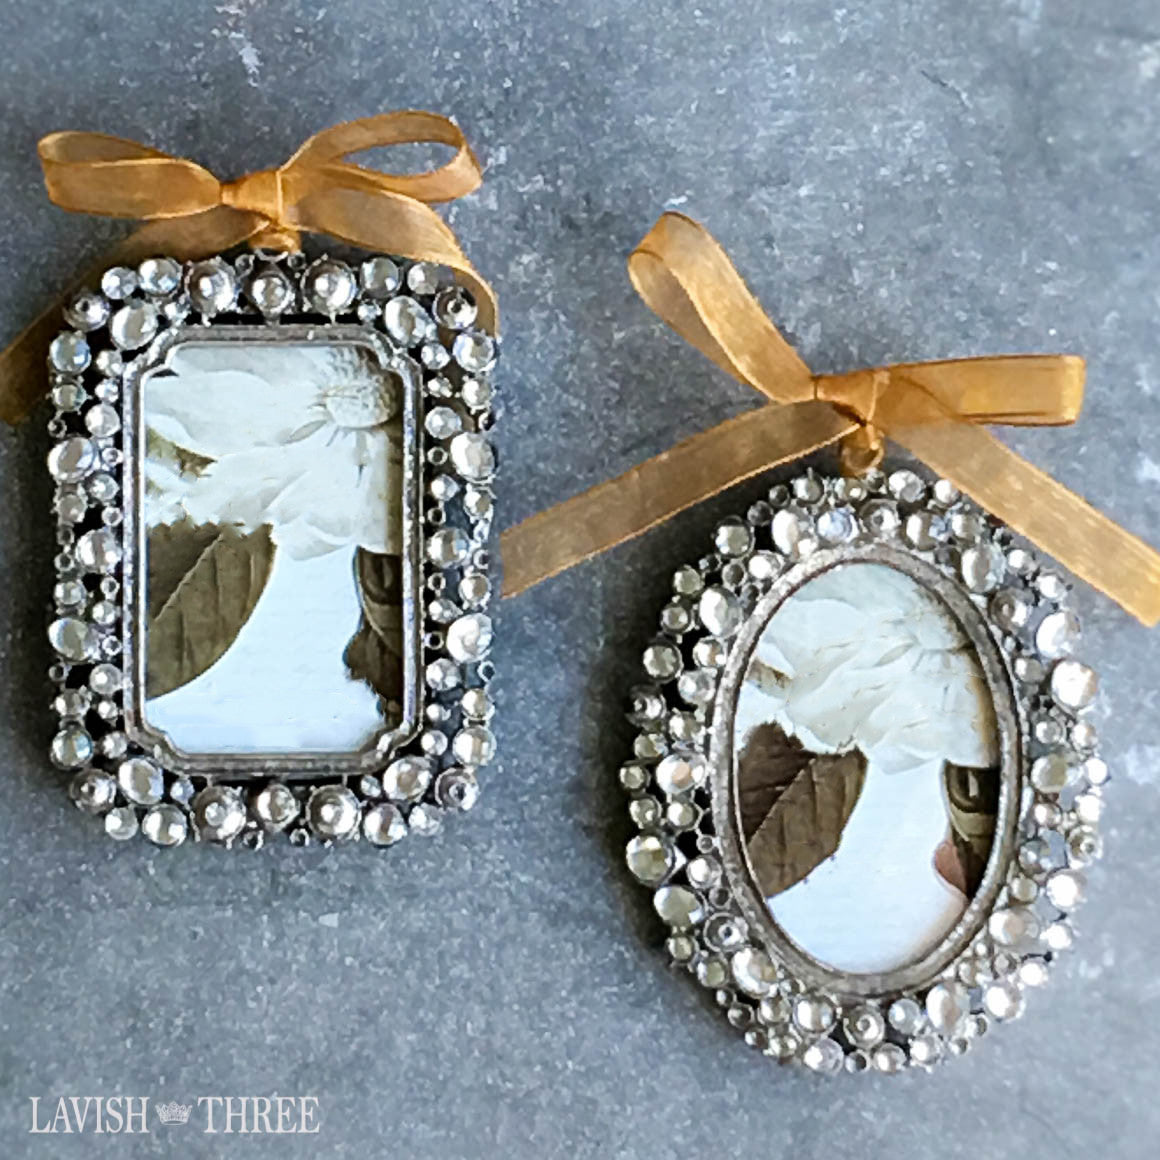 Pewter silver embellished frame with ribbon lavish three 3